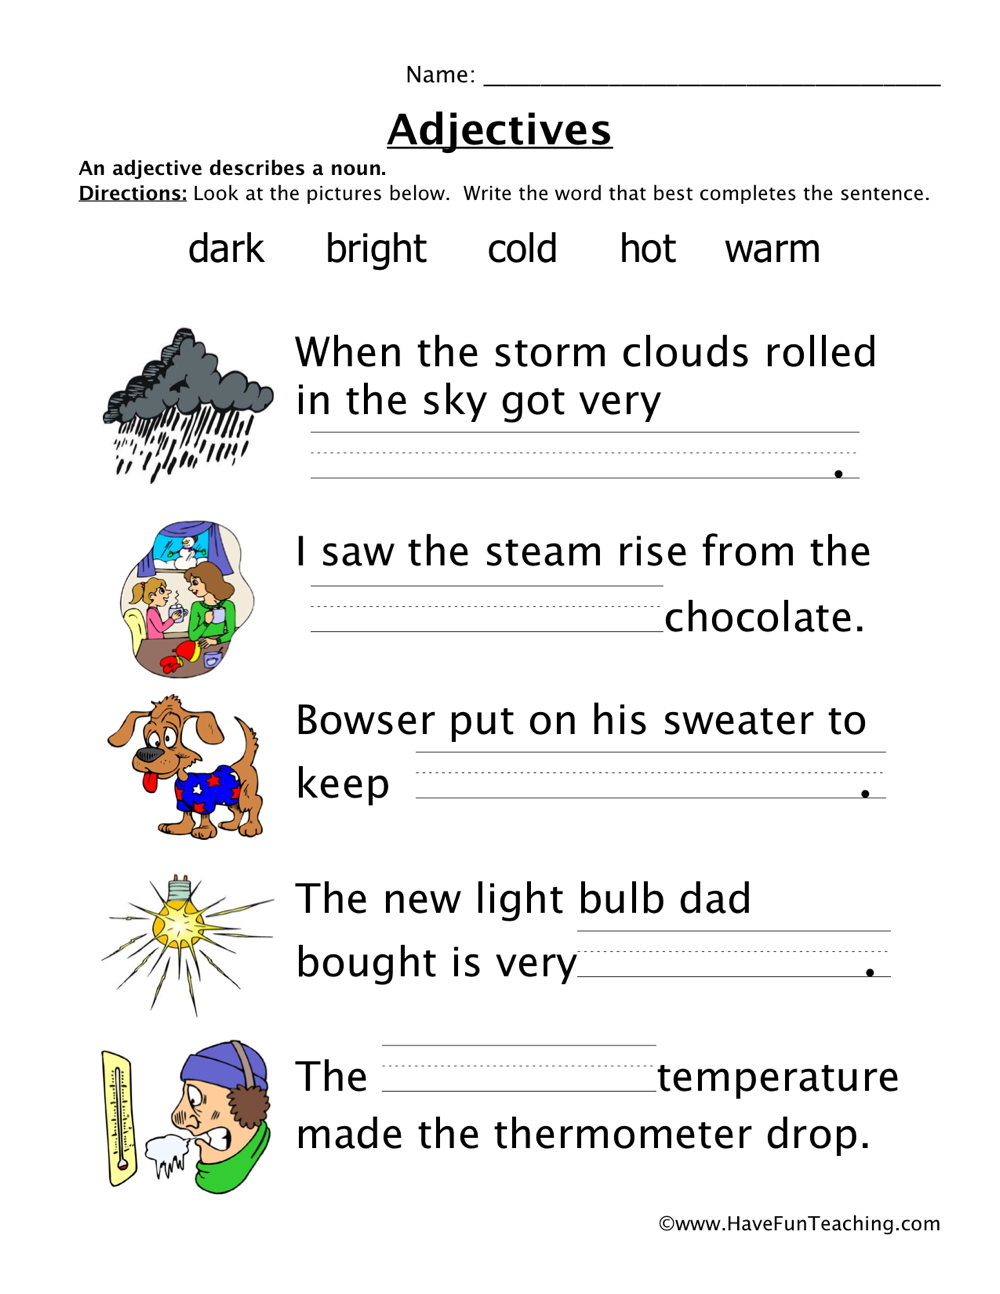 Grammar Worksheets | Have Fun Teaching